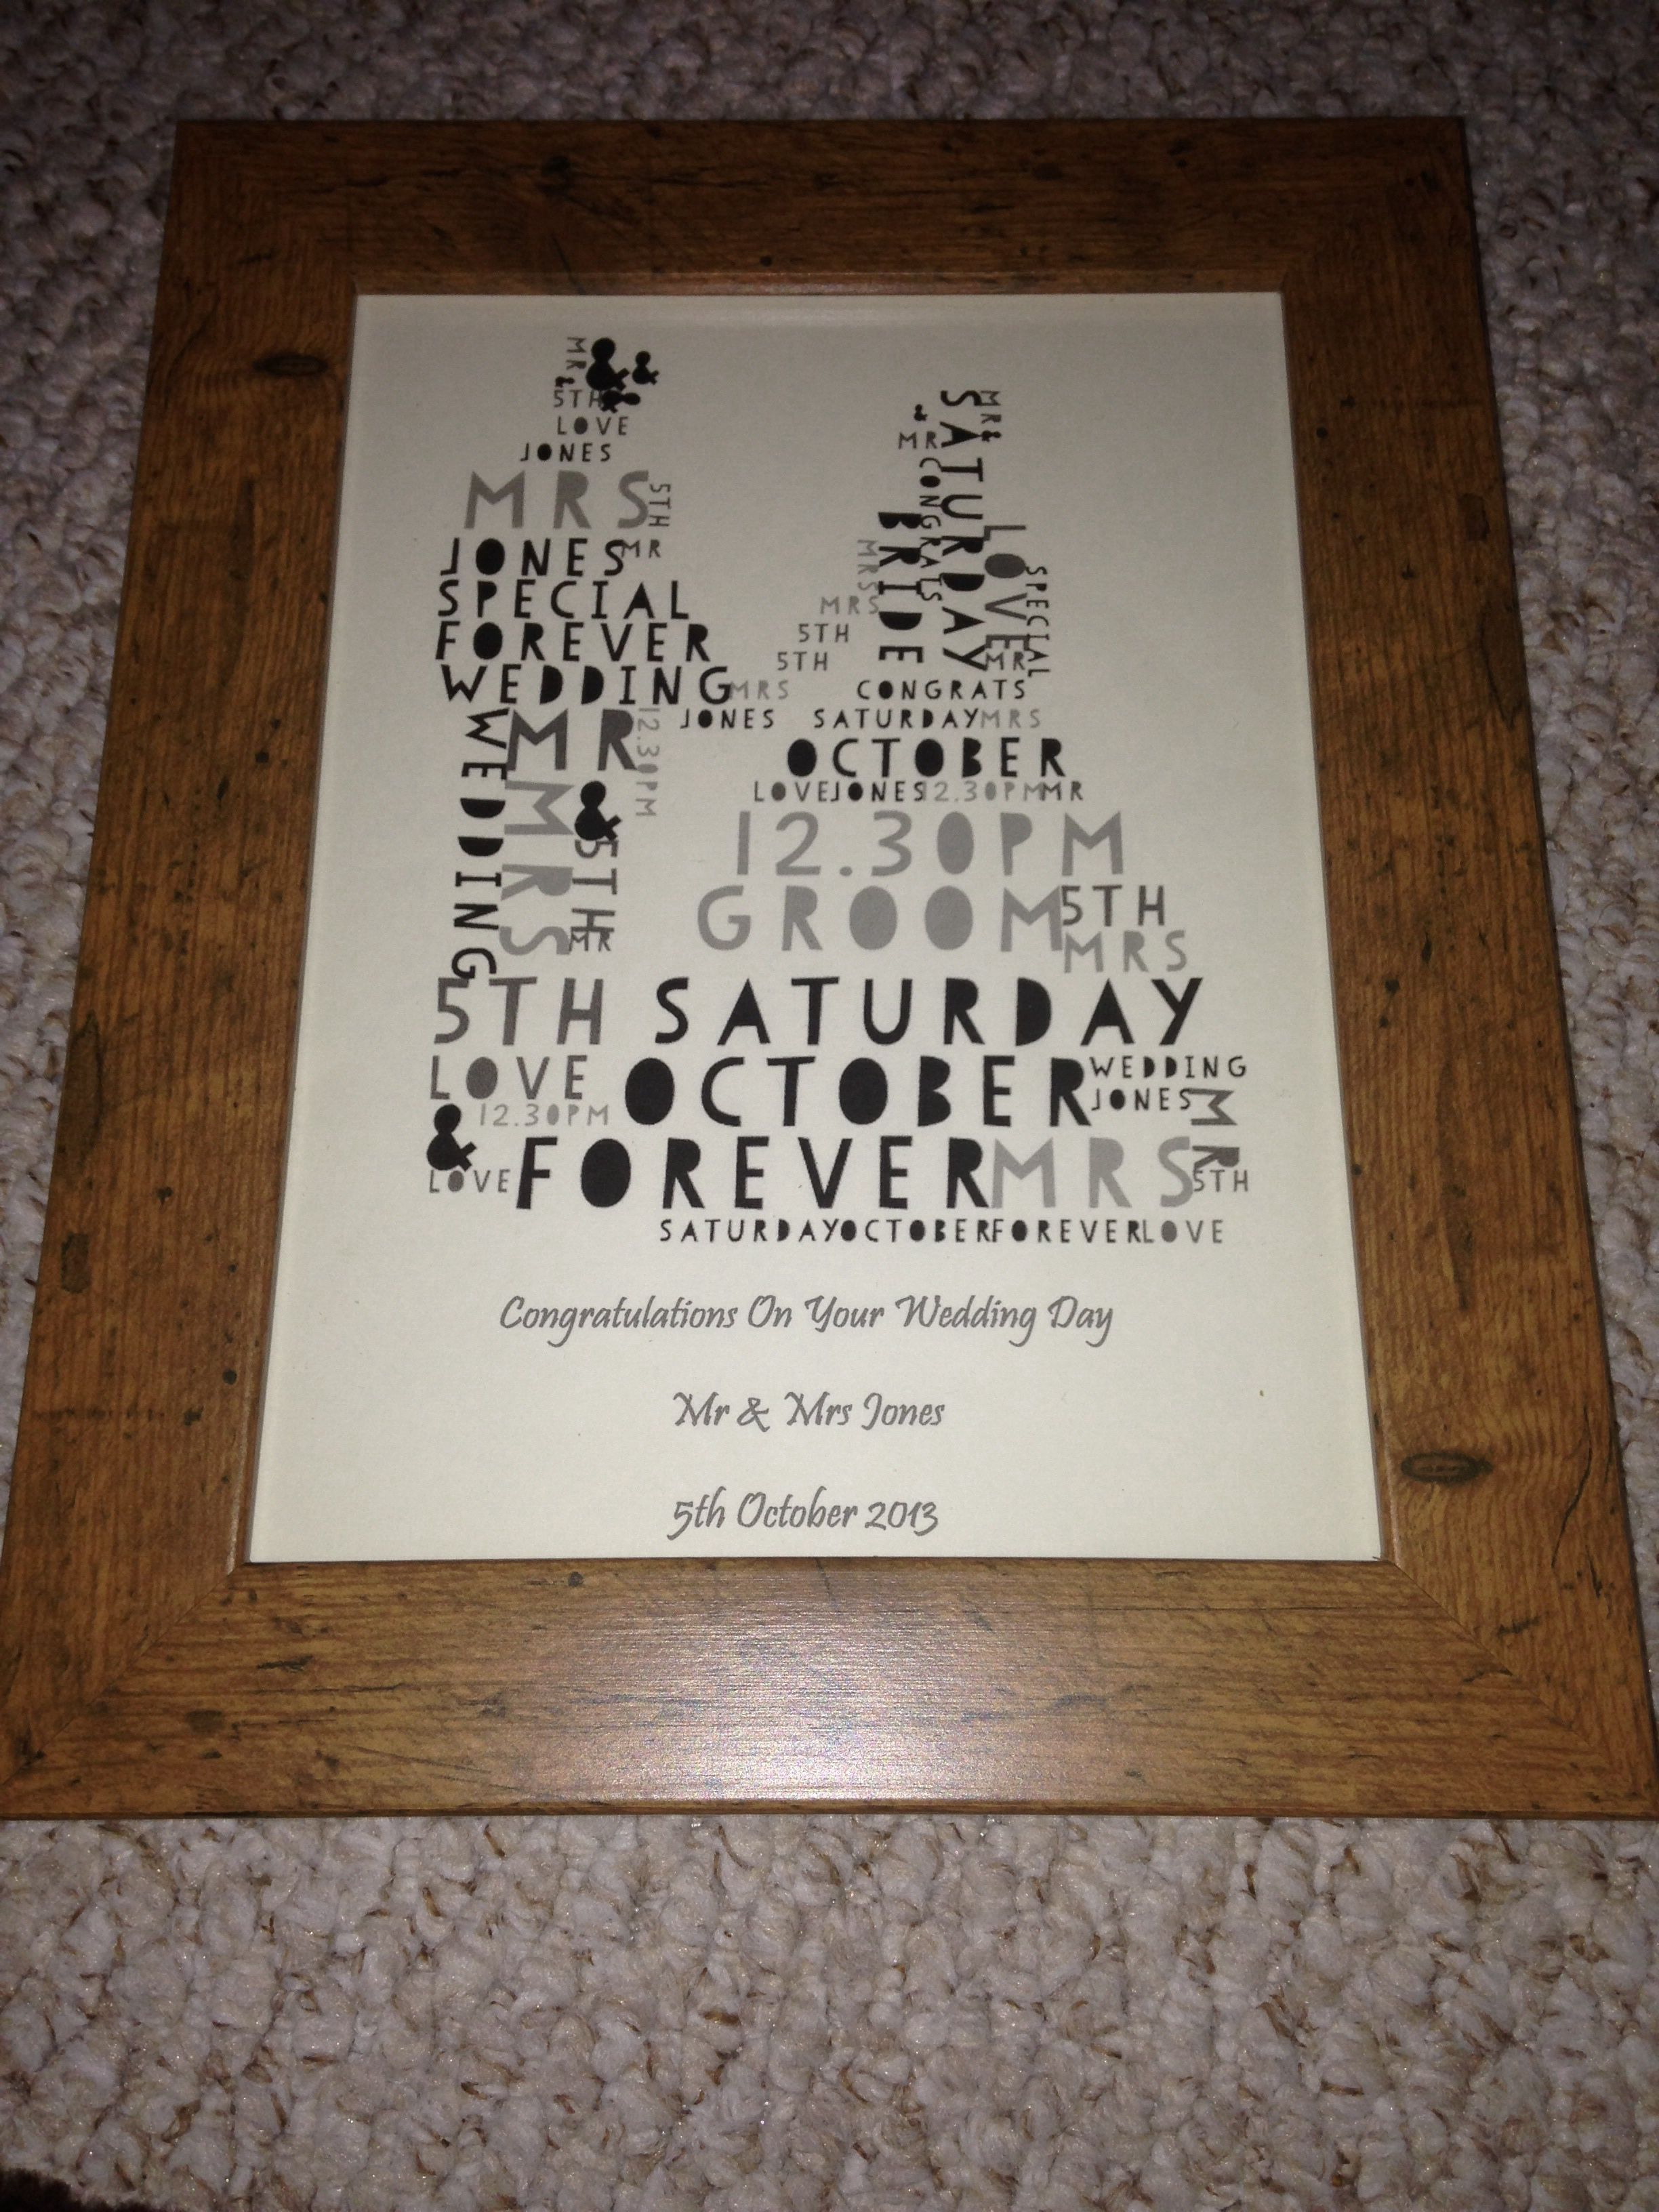 Pin by BobandMelissa Nowack on Amazing Gift Idea'sDIY